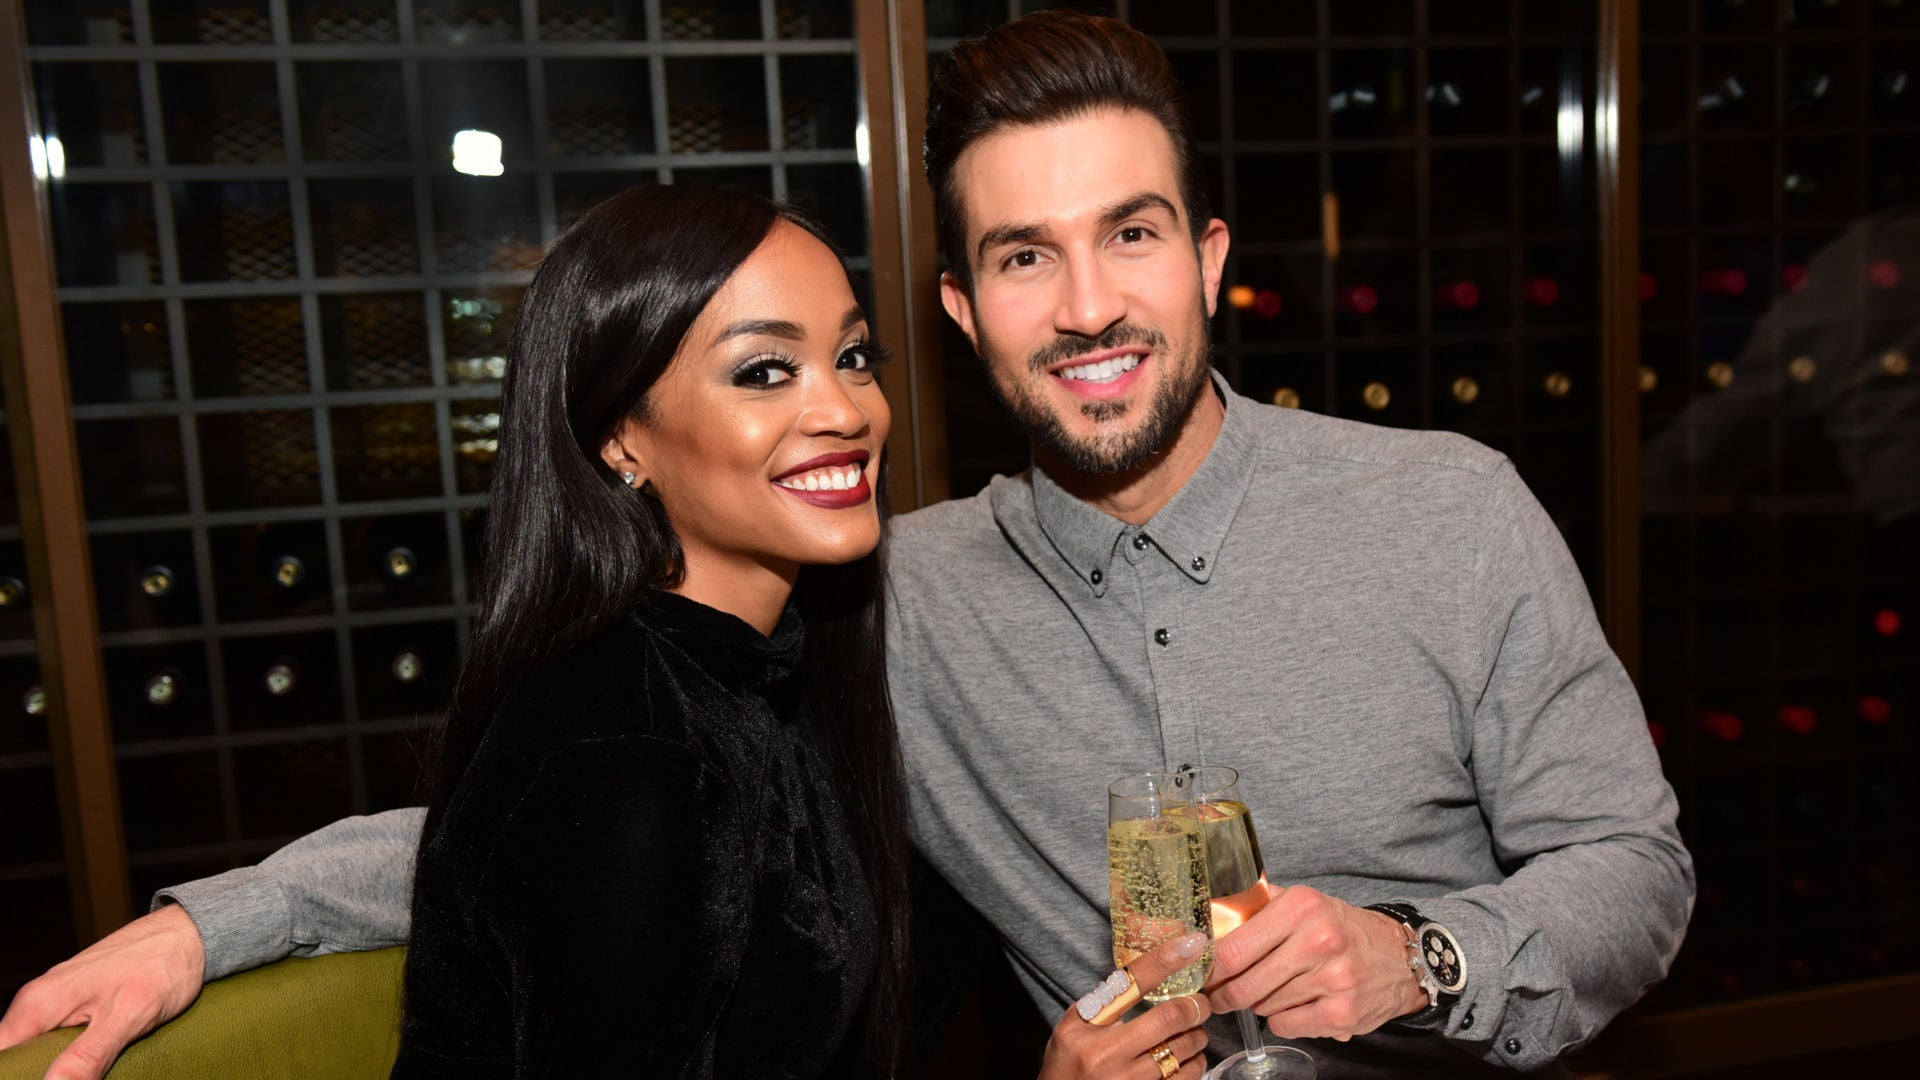 'Bachelorette' Star Rachel Lindsay Drops New Engagement Photos With Fiancé Bryan Abasolo